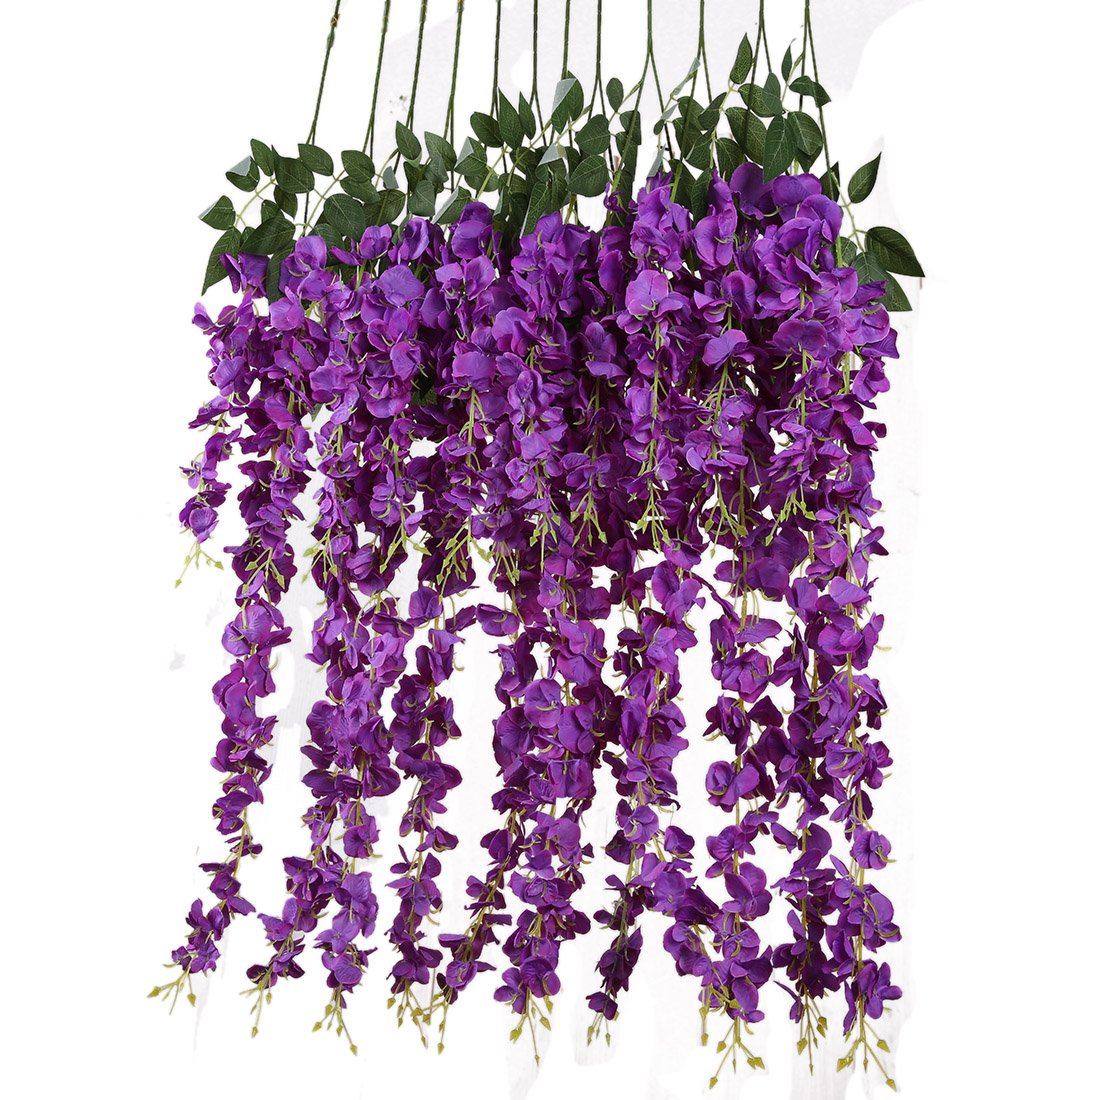 Luyue 3.18 Feet Artificial Silk Wisteria Vine Ratta Silk Hanging Flower Wedding Decor,6 Pieces,(Purple)